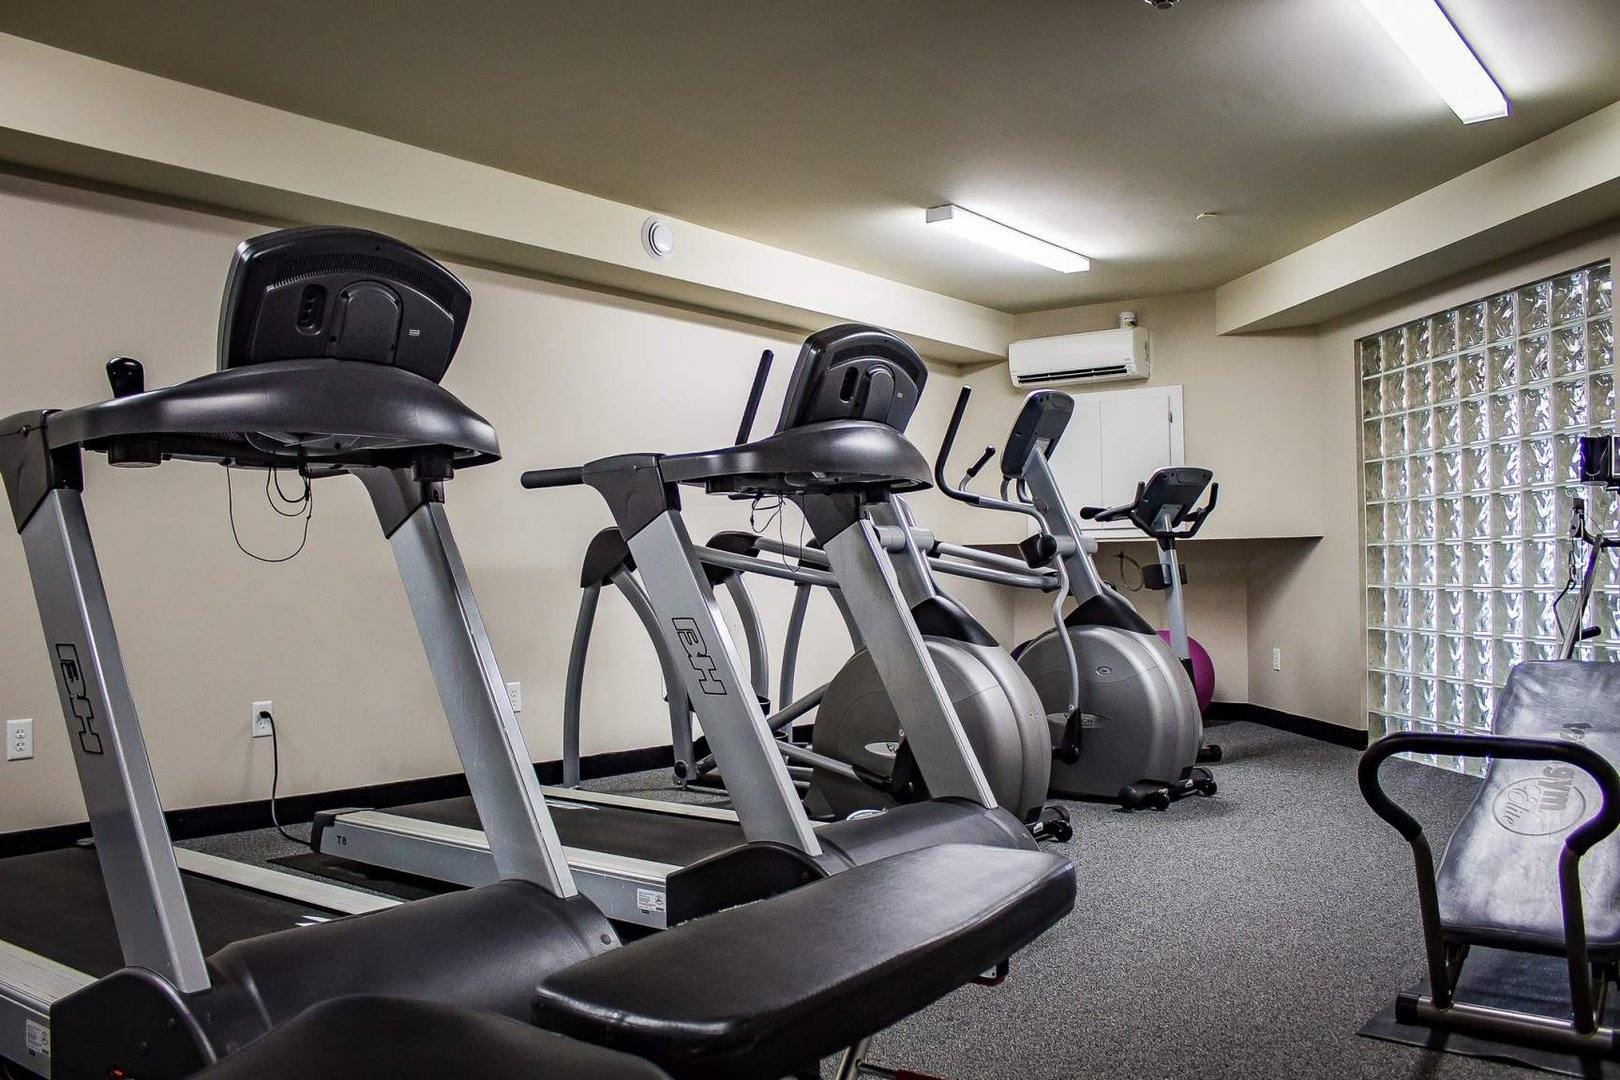 Mid-Rise-Apartment for rent at 747 Coverdale Road, Moncton, NB. This is the gym with carpet.